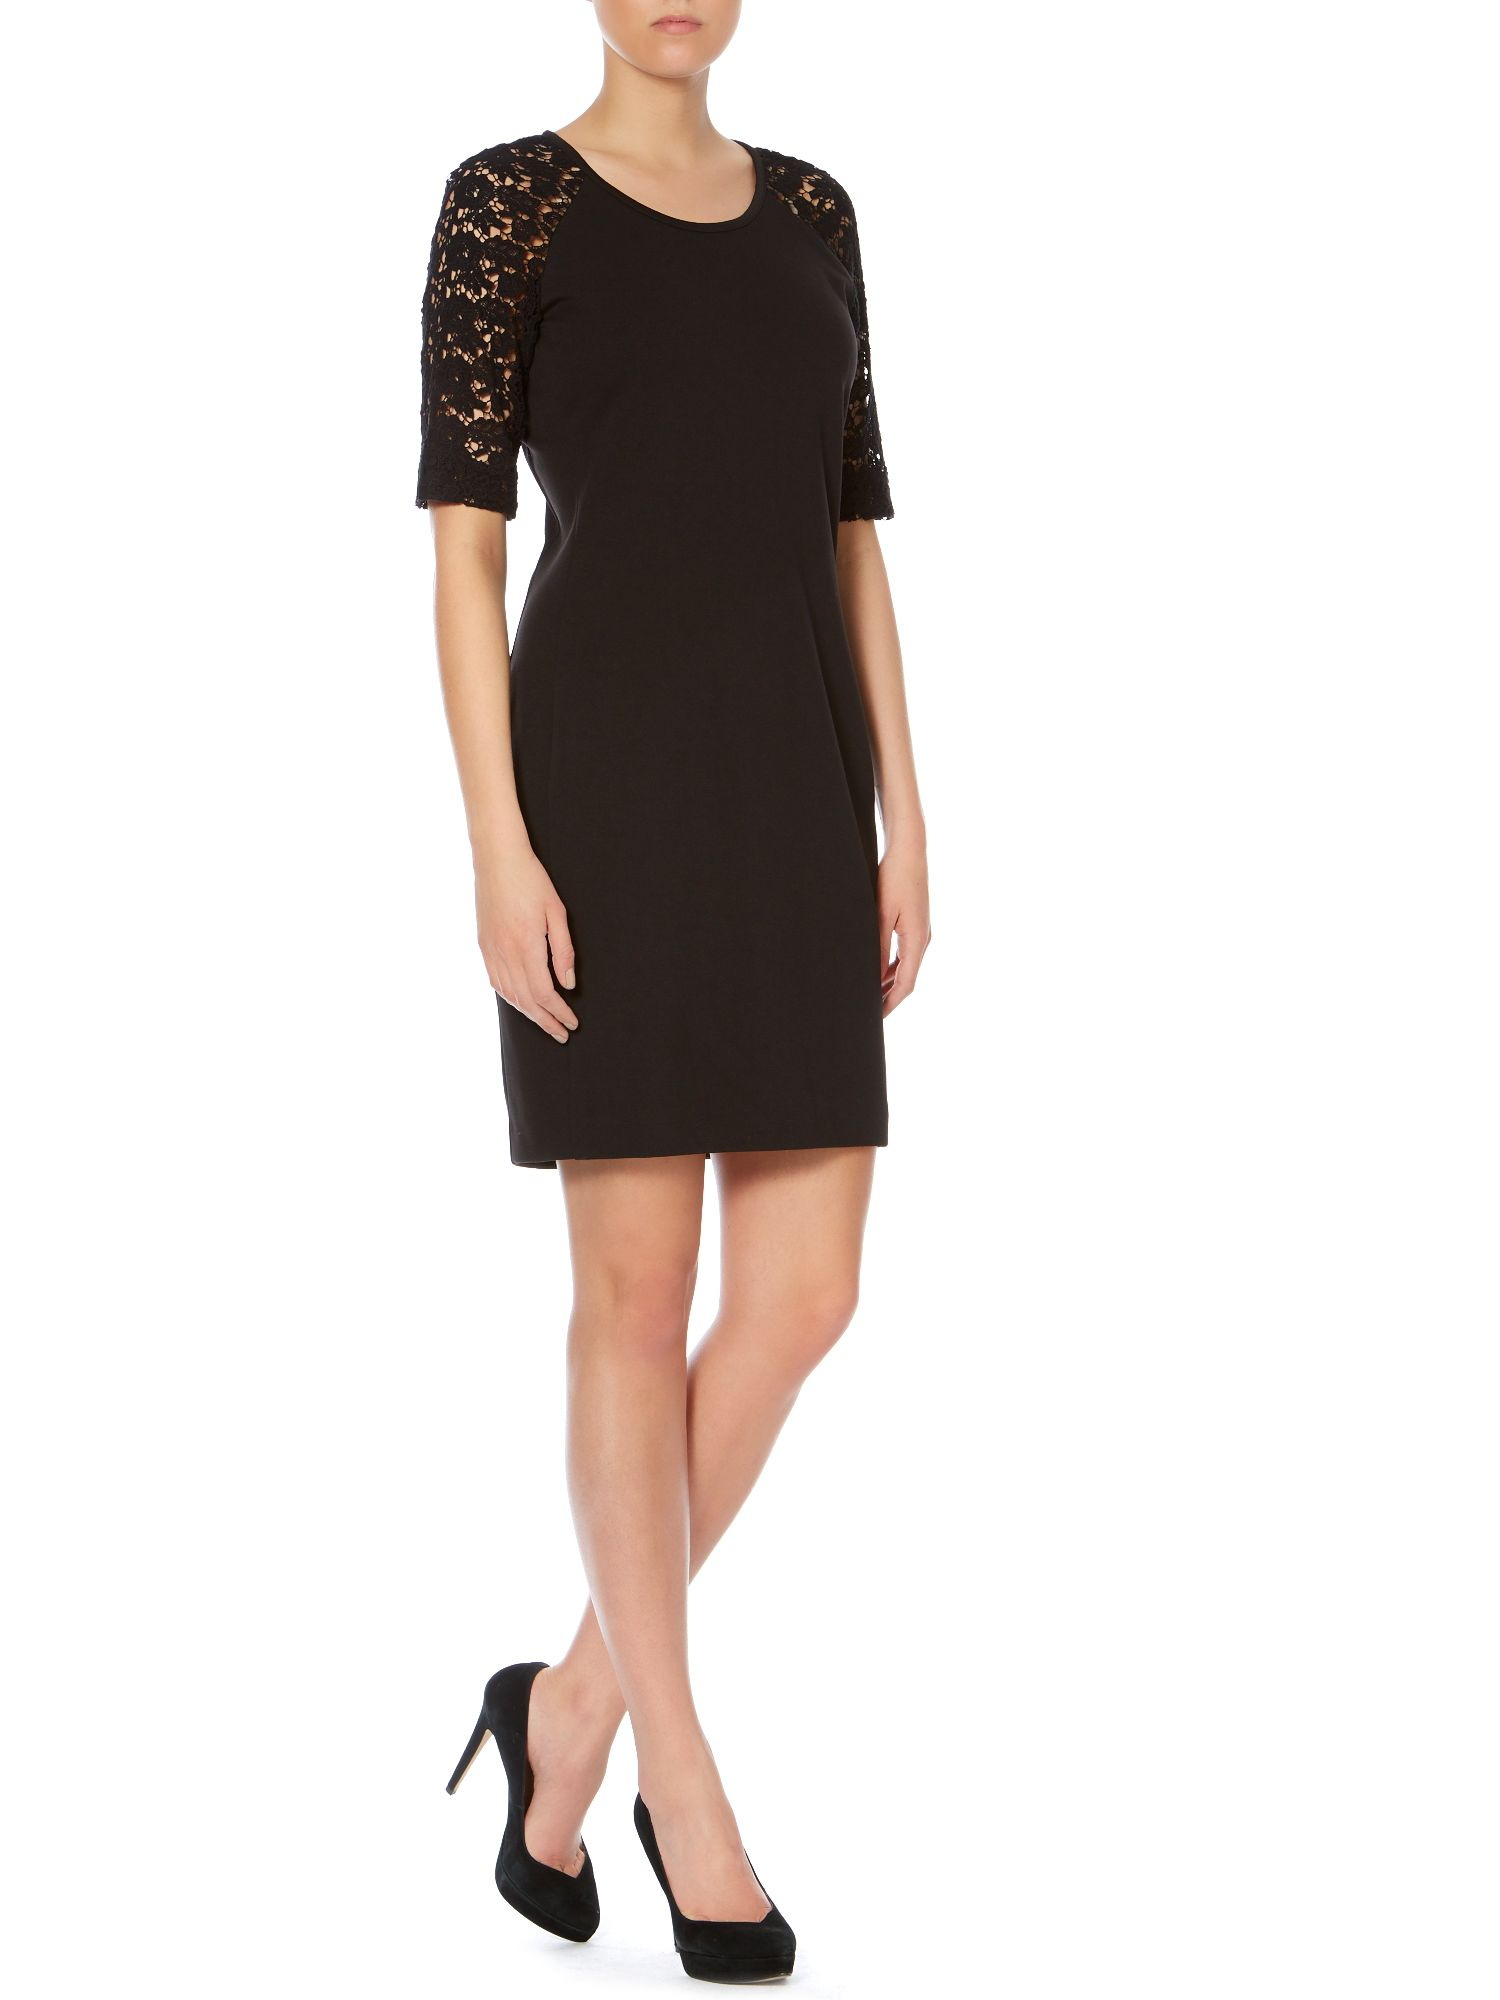 Lace sleeve black shift dress